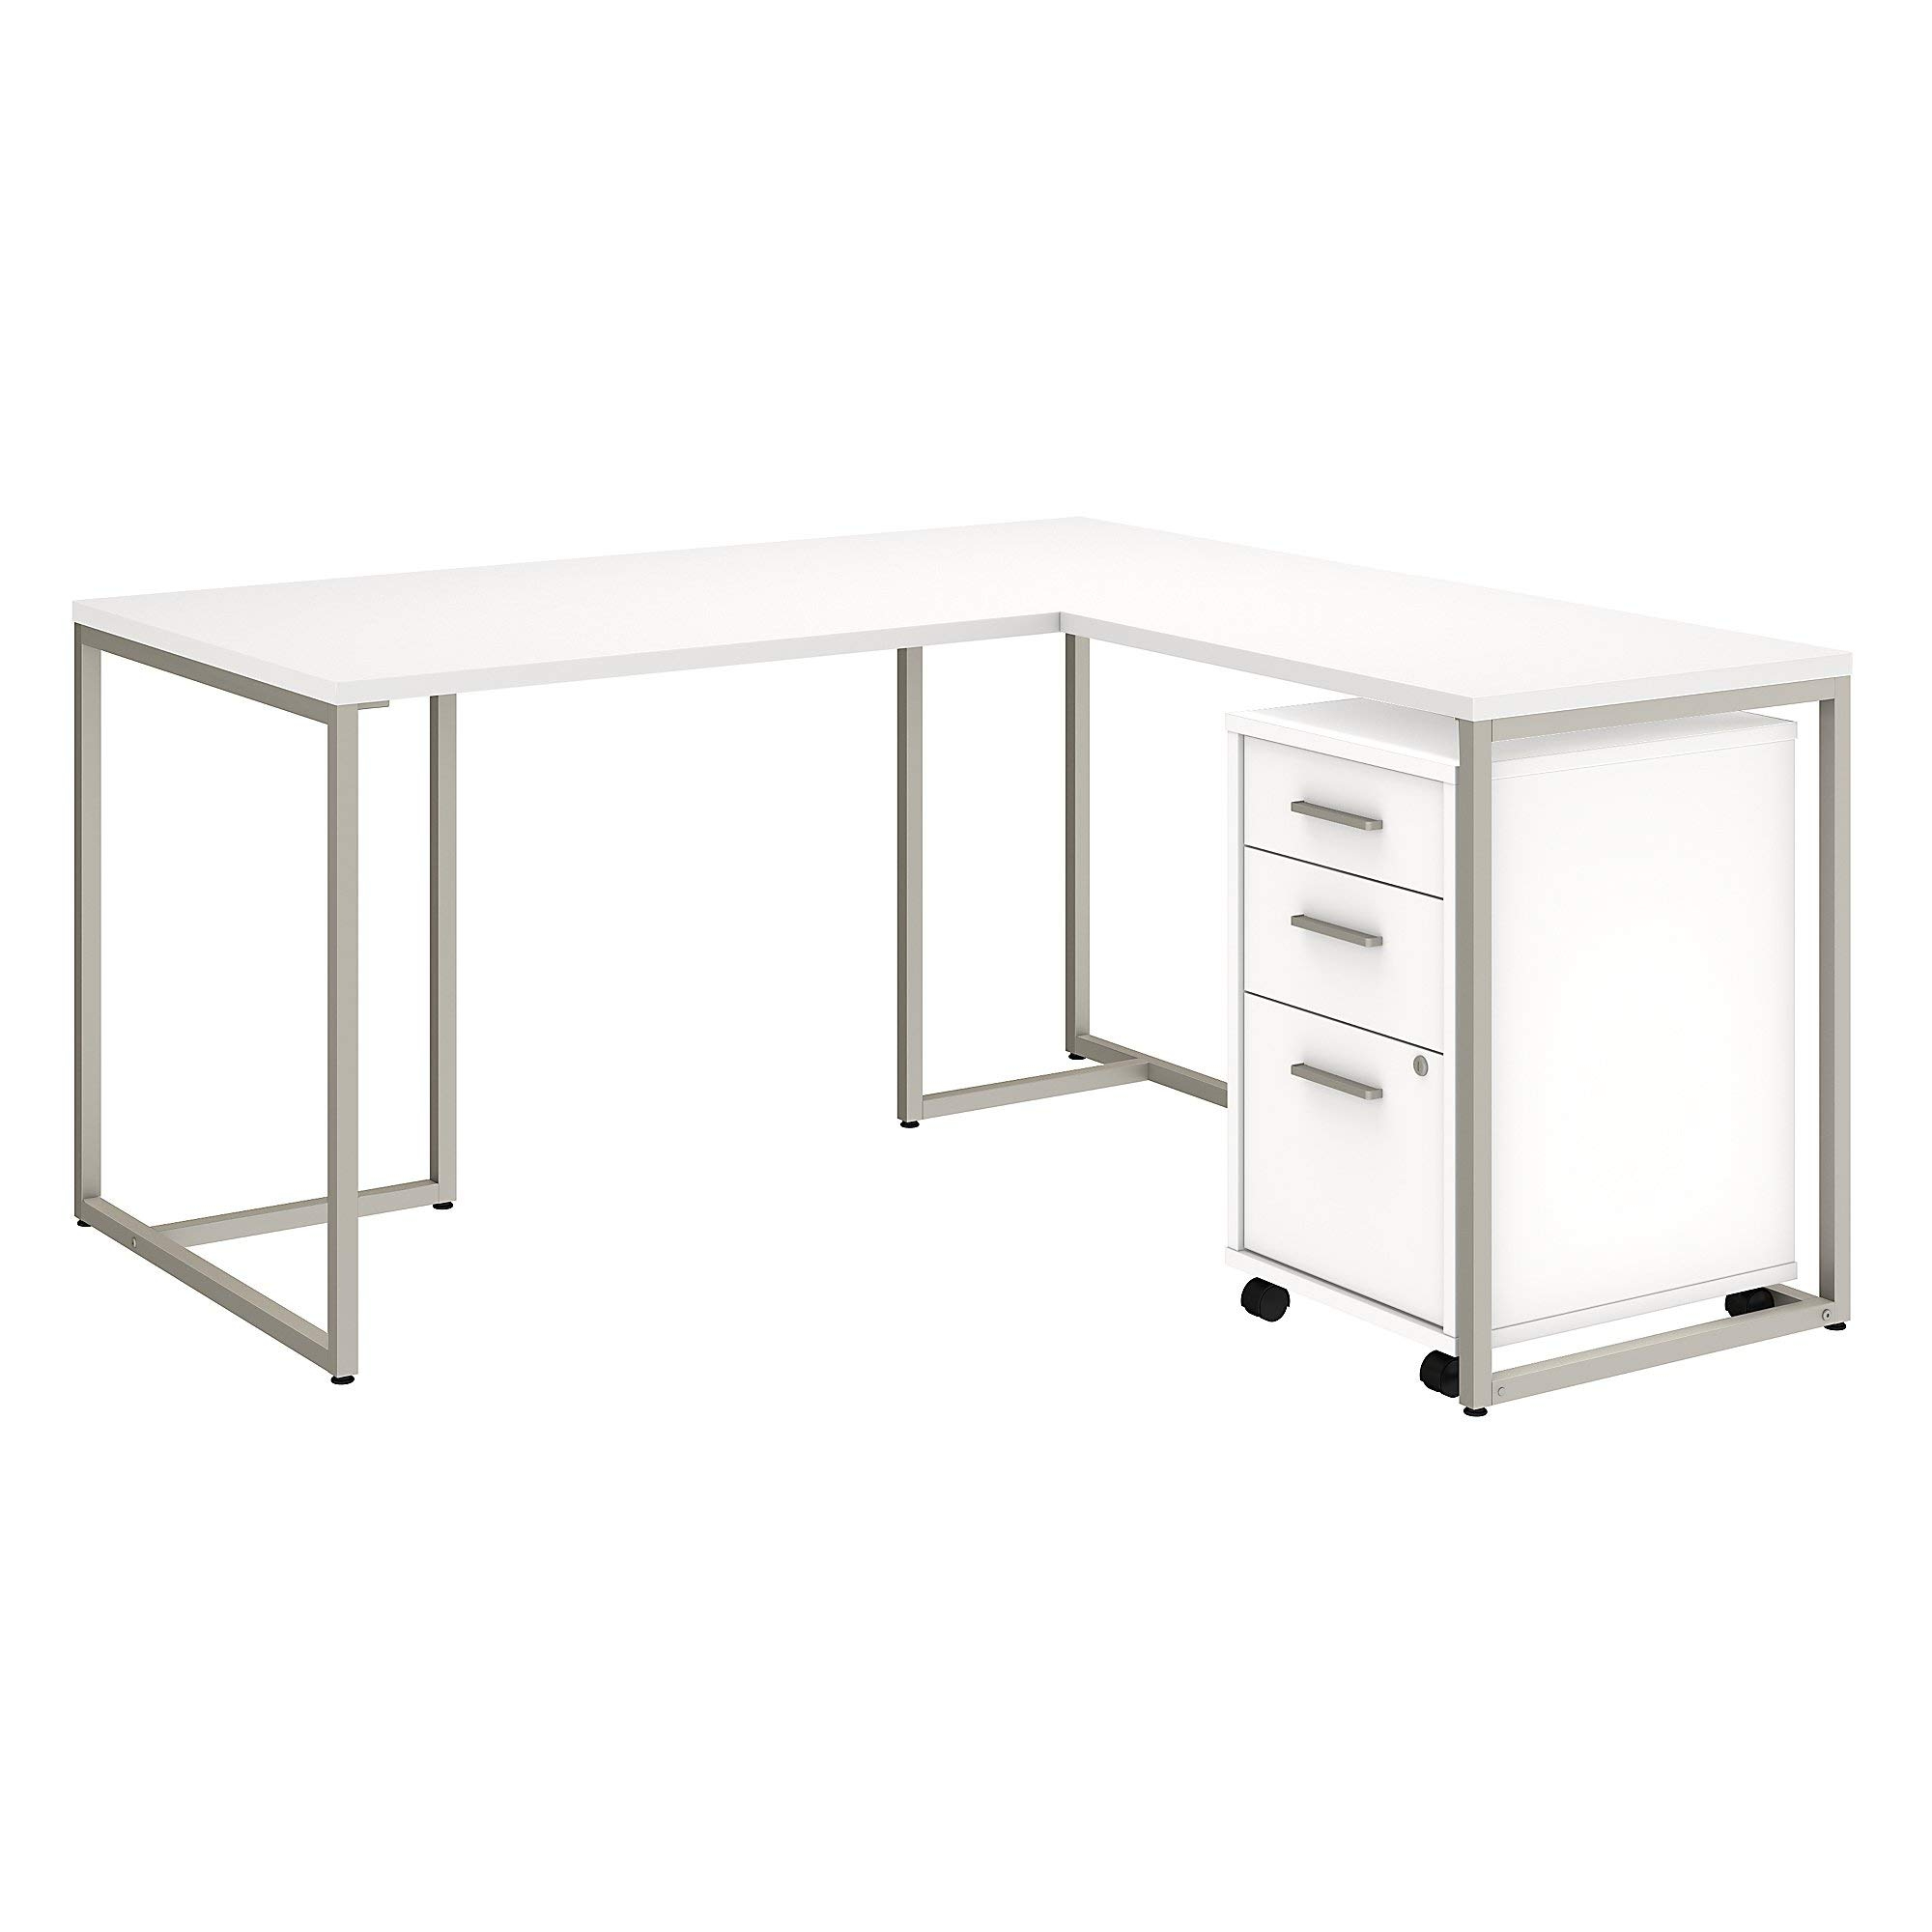 Office by kathy ireland Method 60W L Shaped Desk with 30W Return and Mobile File Cabinet in White by Kathy Ireland Office